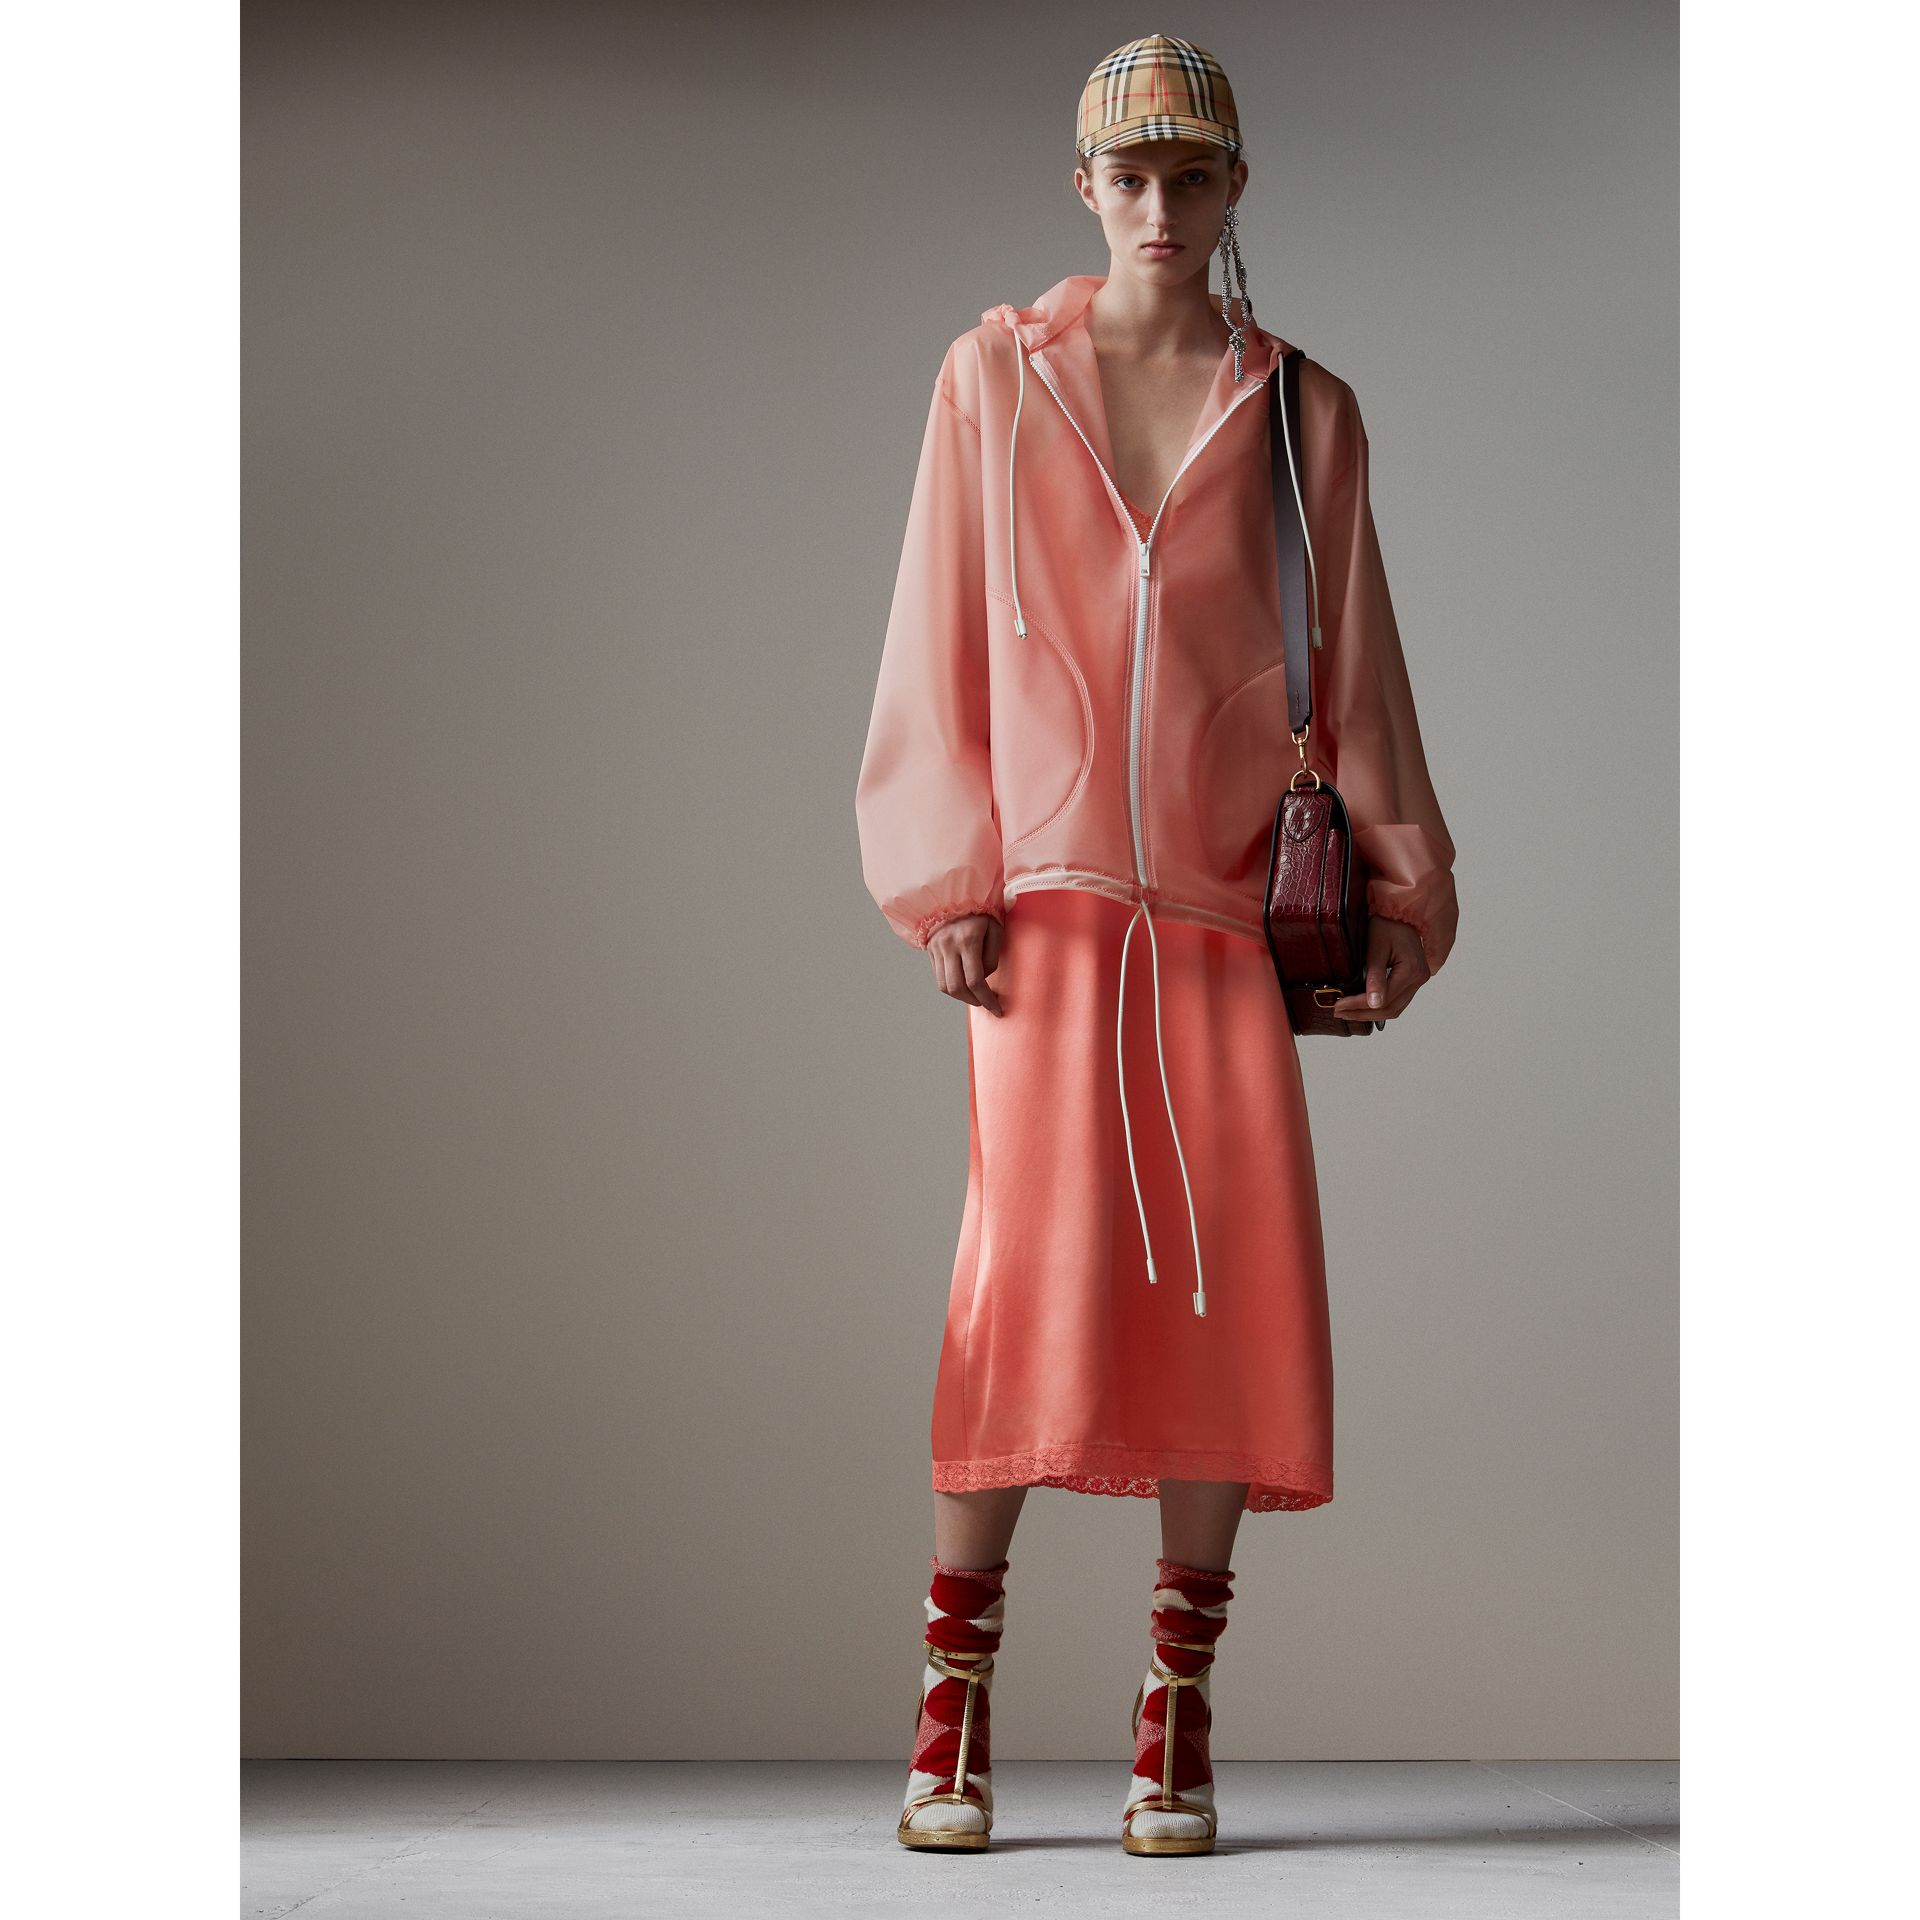 Robe combinaison en soie avec dentelle de Chantilly (Rouge Corail) - Femme | Burberry - photo de la galerie 4